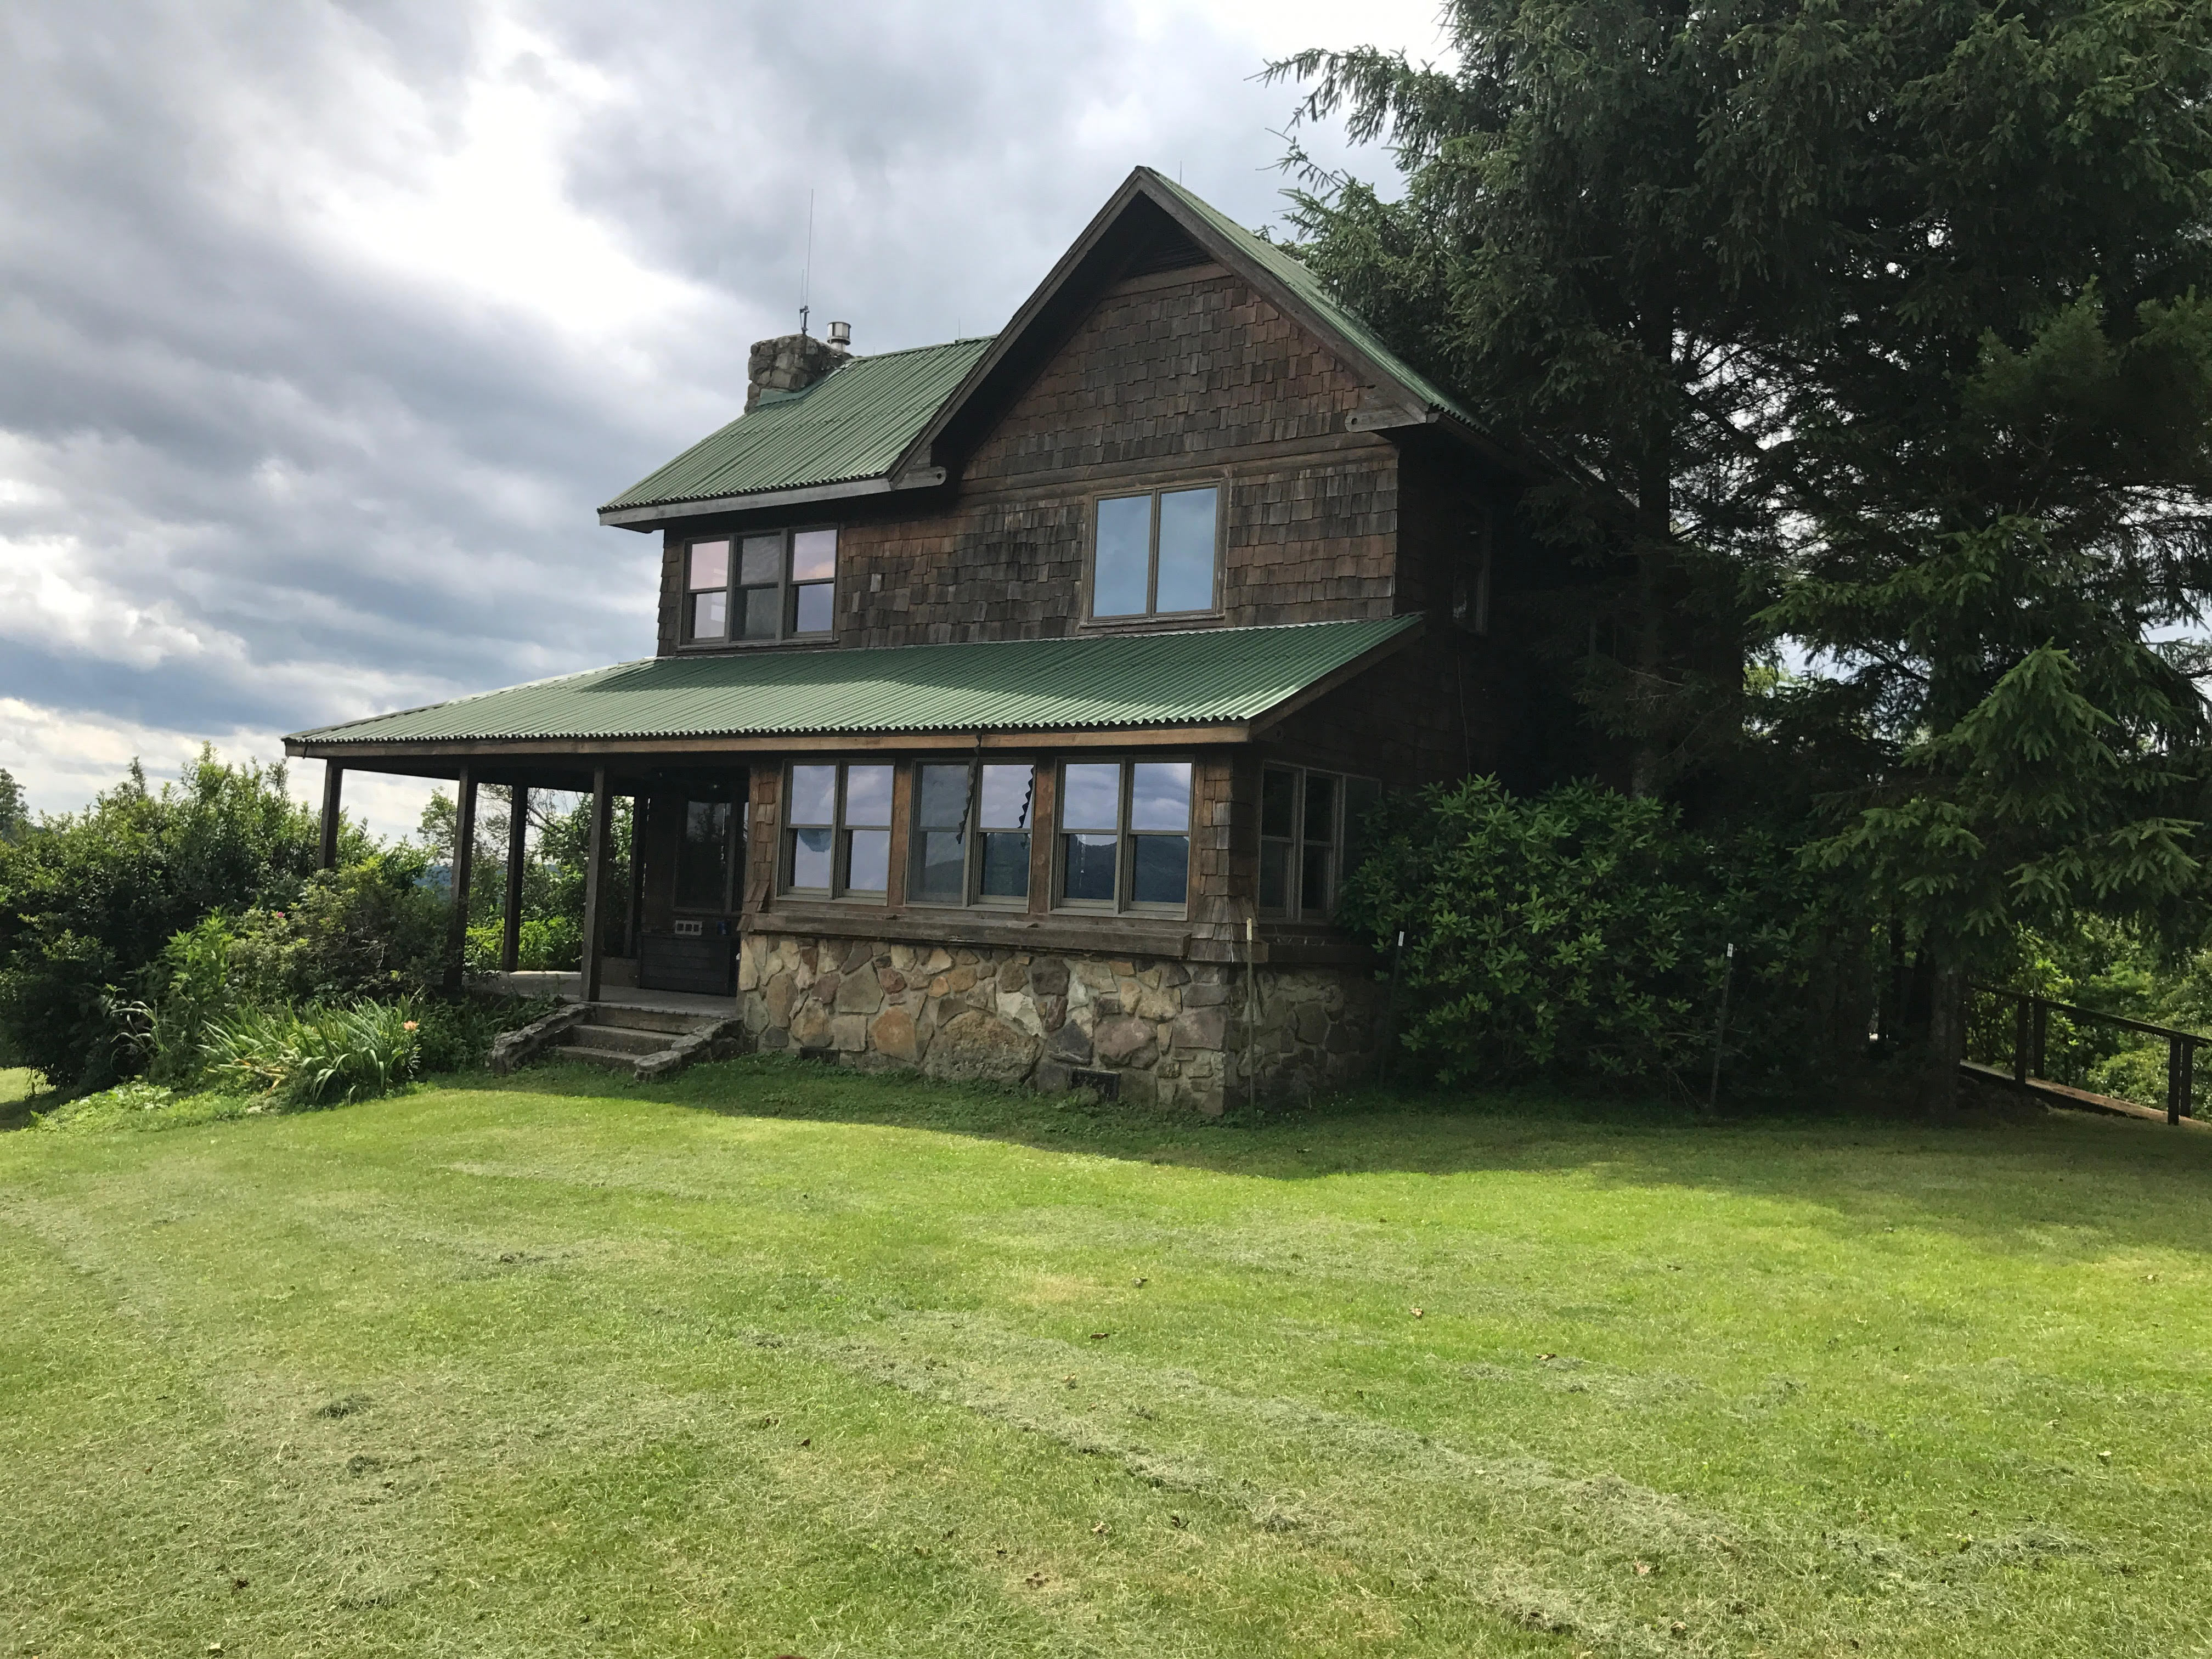 Redtail Ln Hambleton WV under contract by Rebecca Gaujot